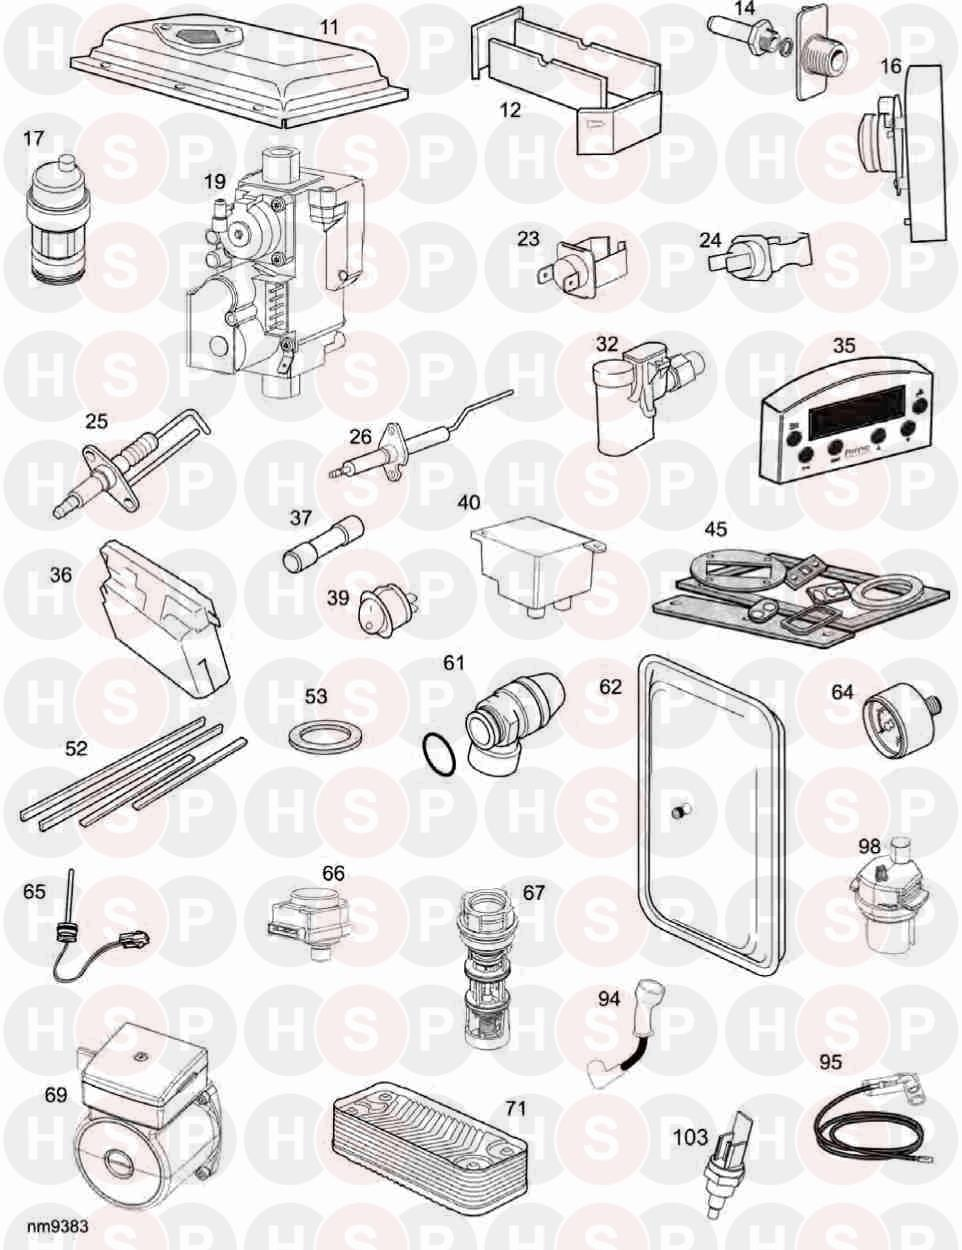 ideal isar he35 appliance diagram  short parts list xf